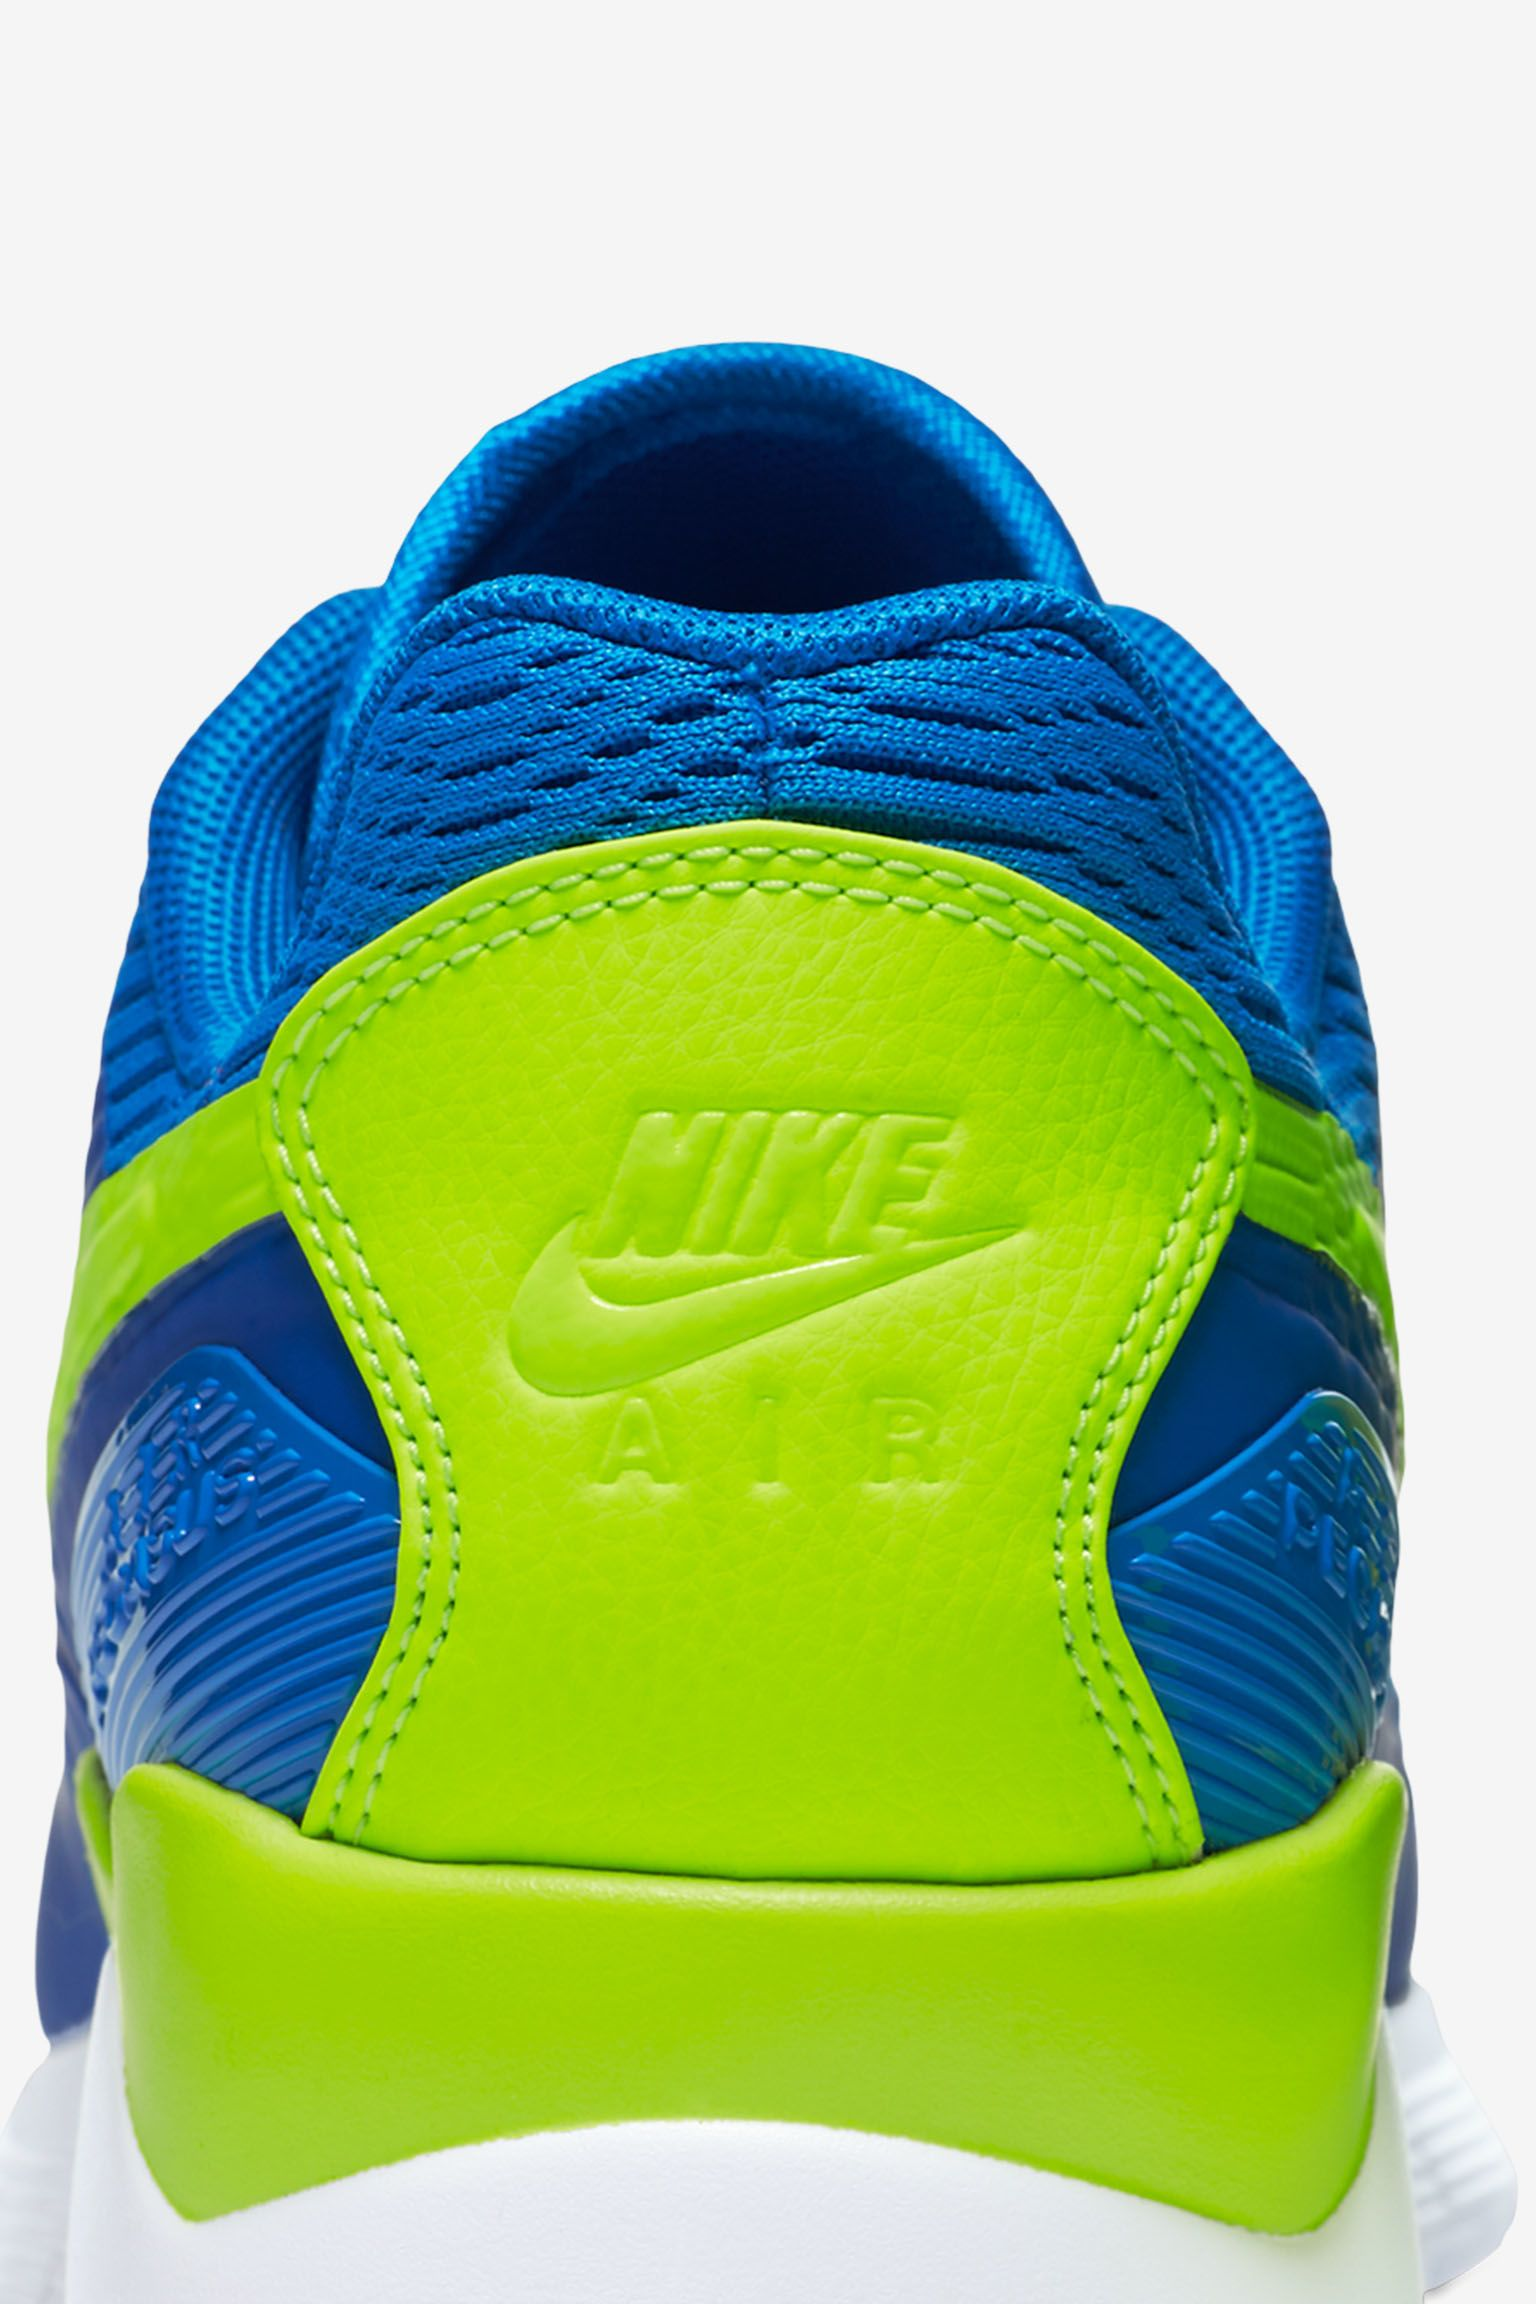 Women's Nike Air Pegasus '92 'International' Blue & Volt